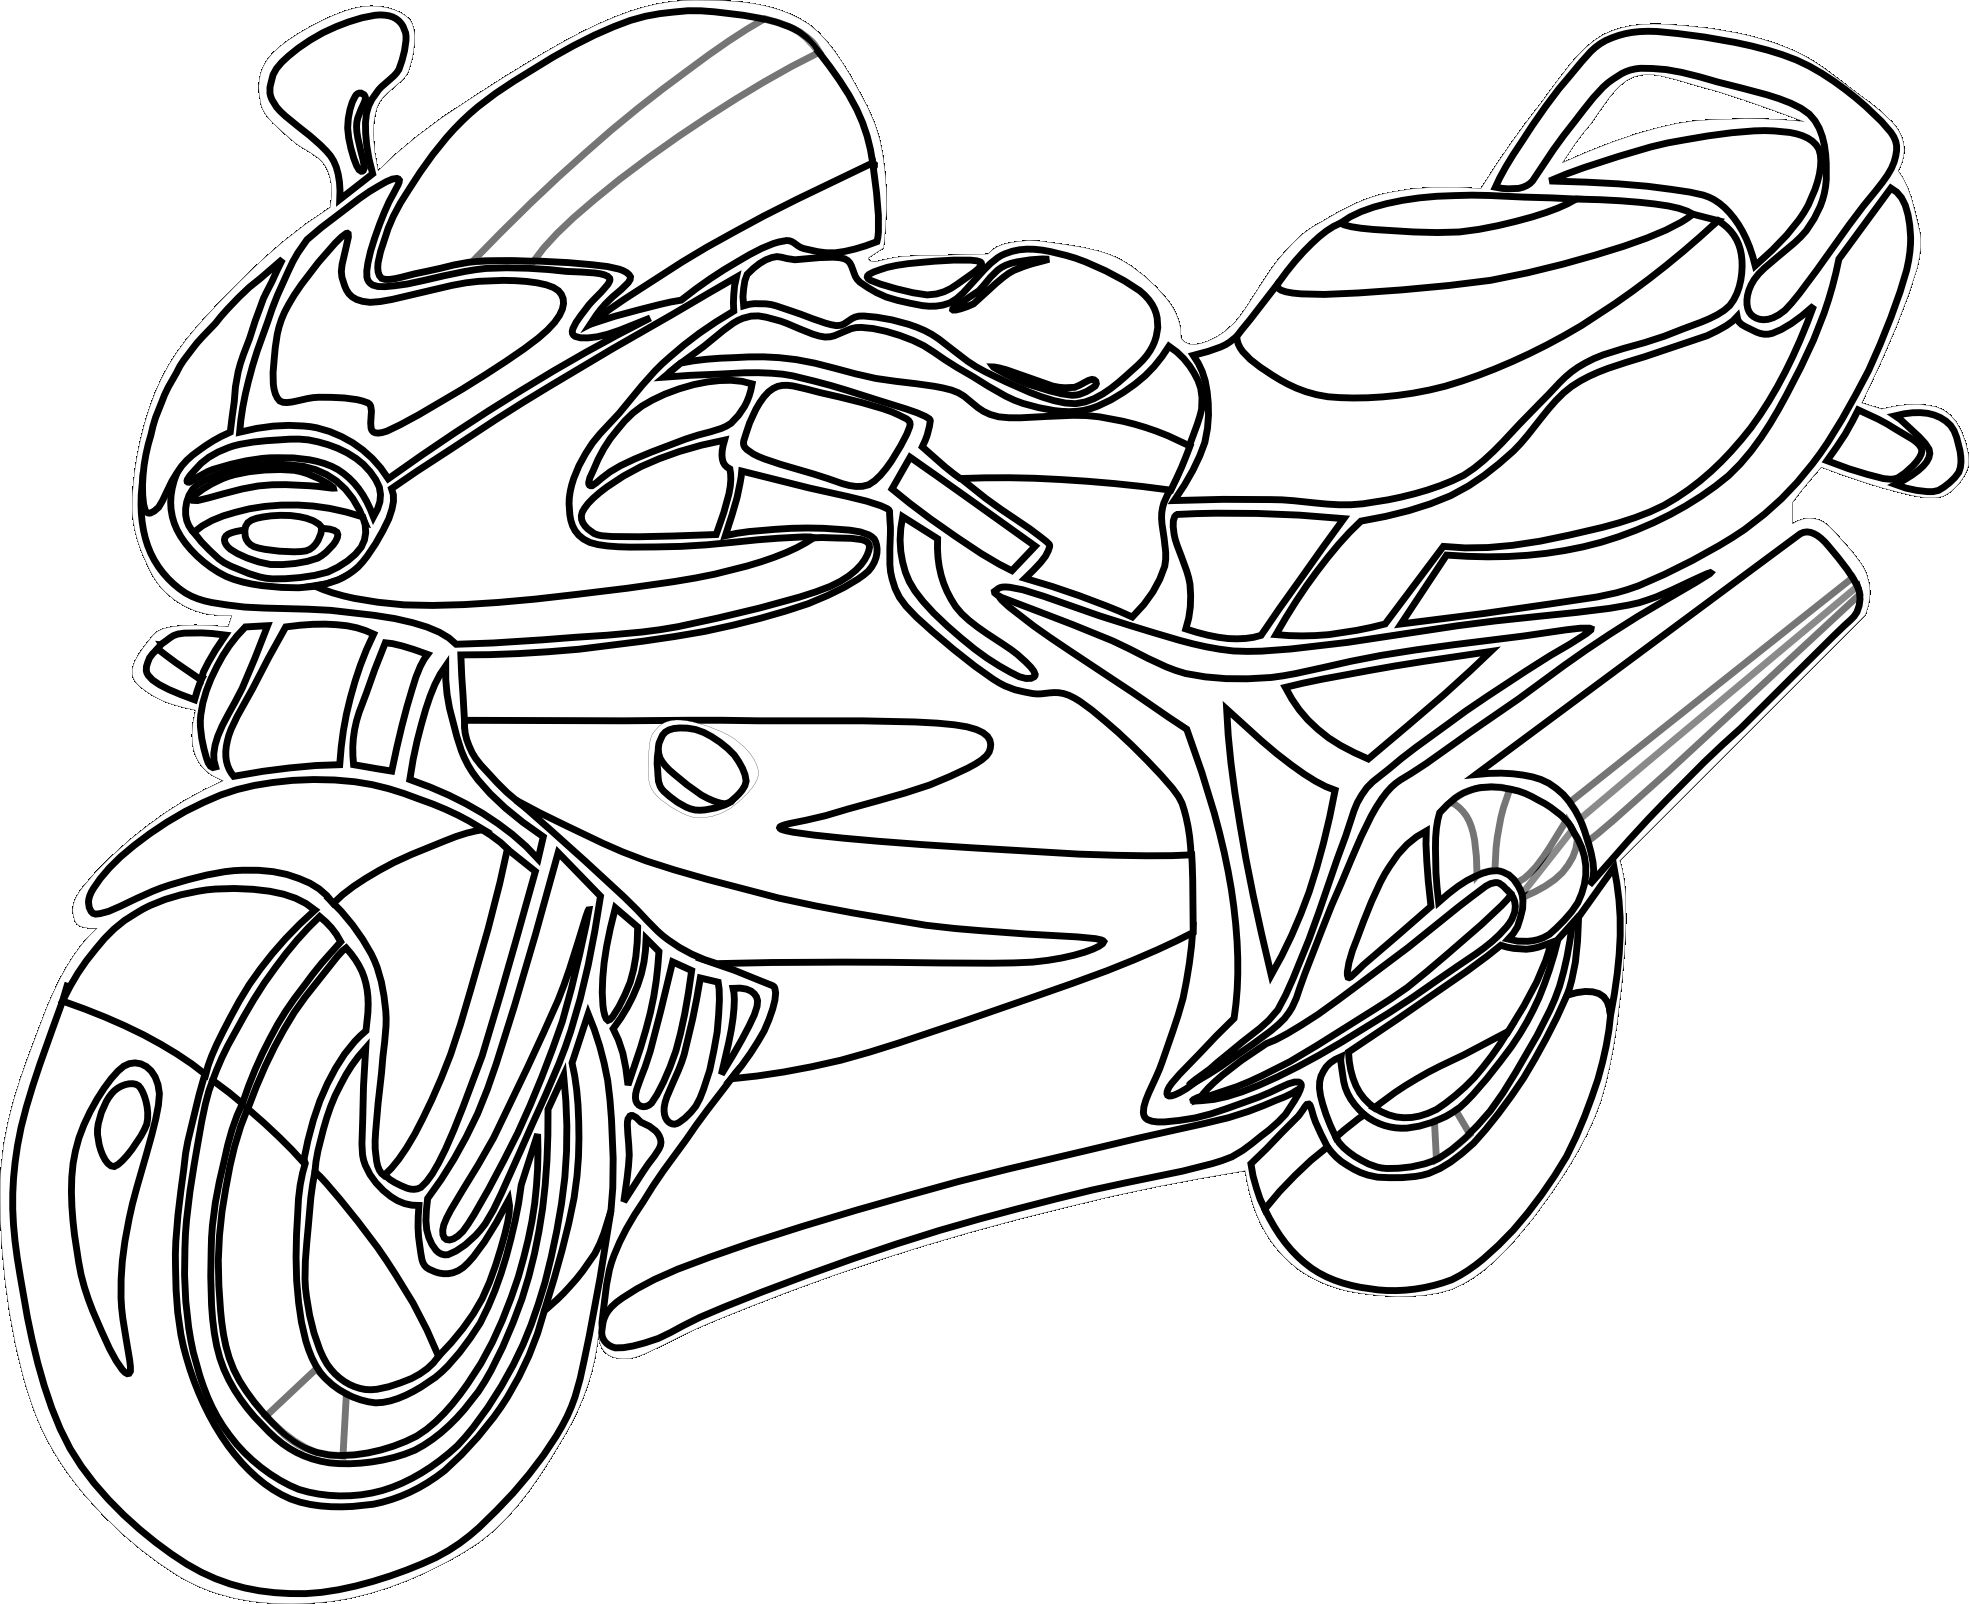 1969x1604 Best Of Motorcycles Coloring Pages Gallery Printable Coloring Sheet